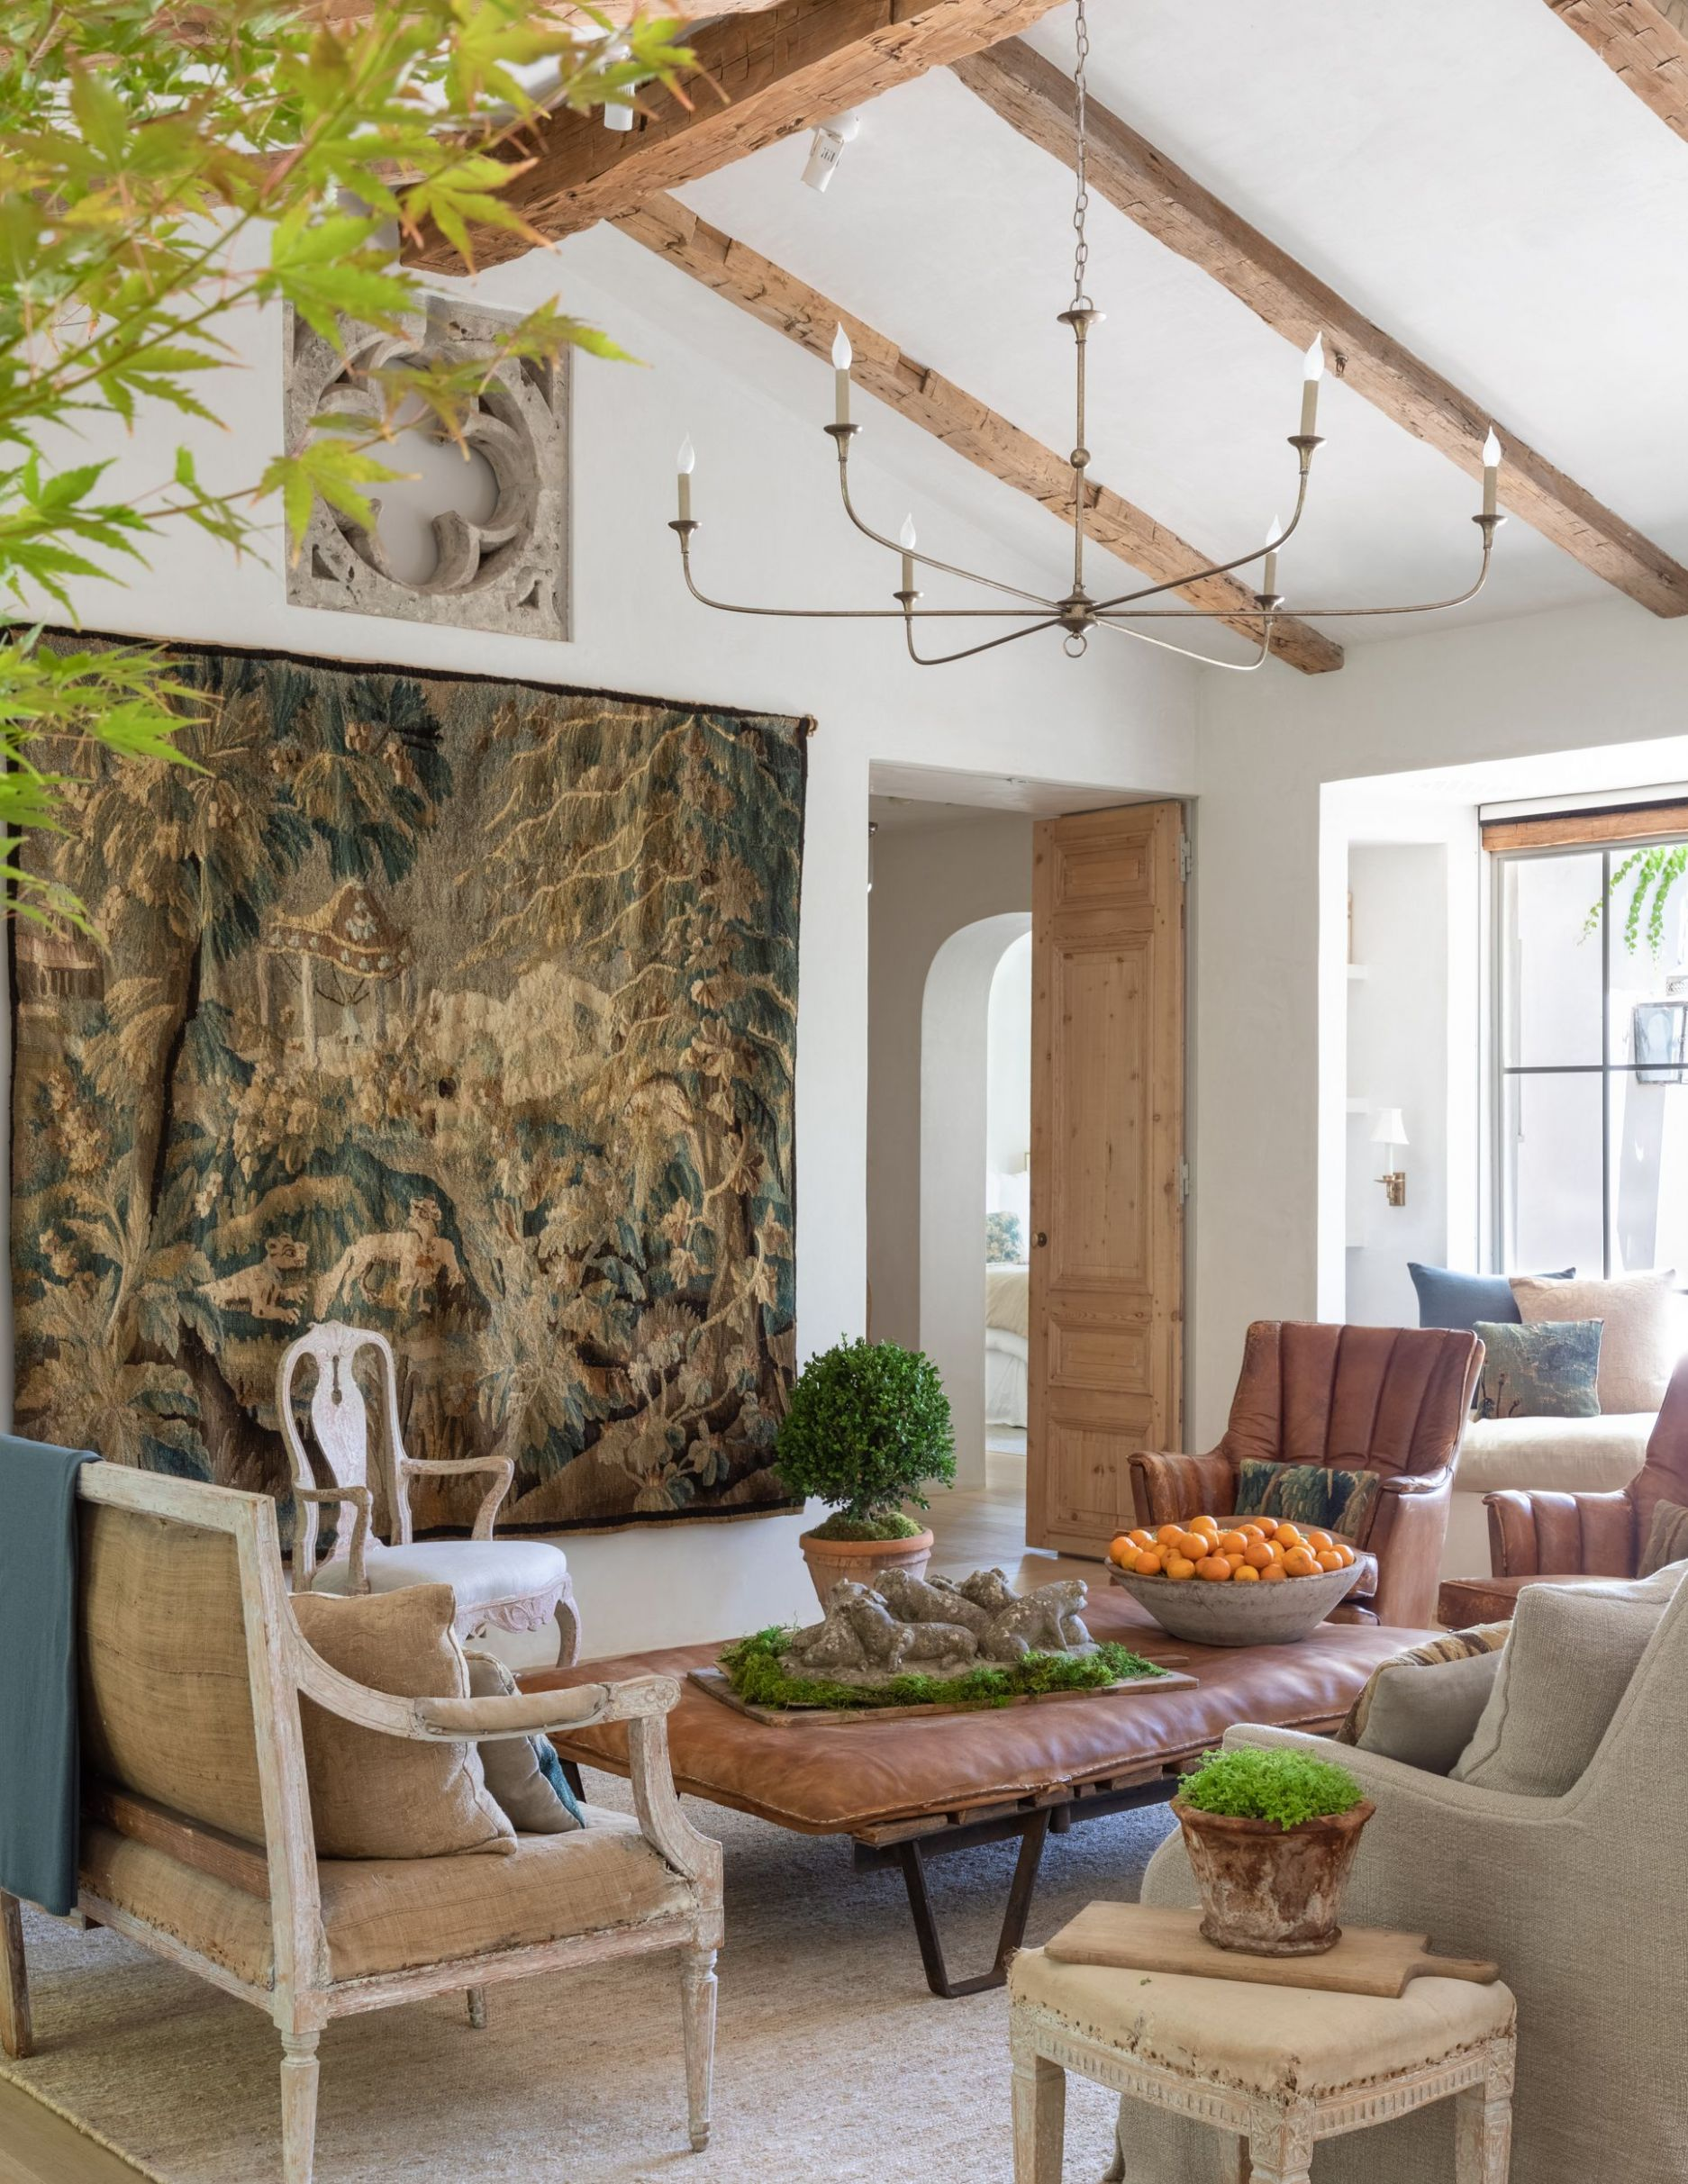 The Design Trends That Are IN and OUT in 10 - What Decorating ...